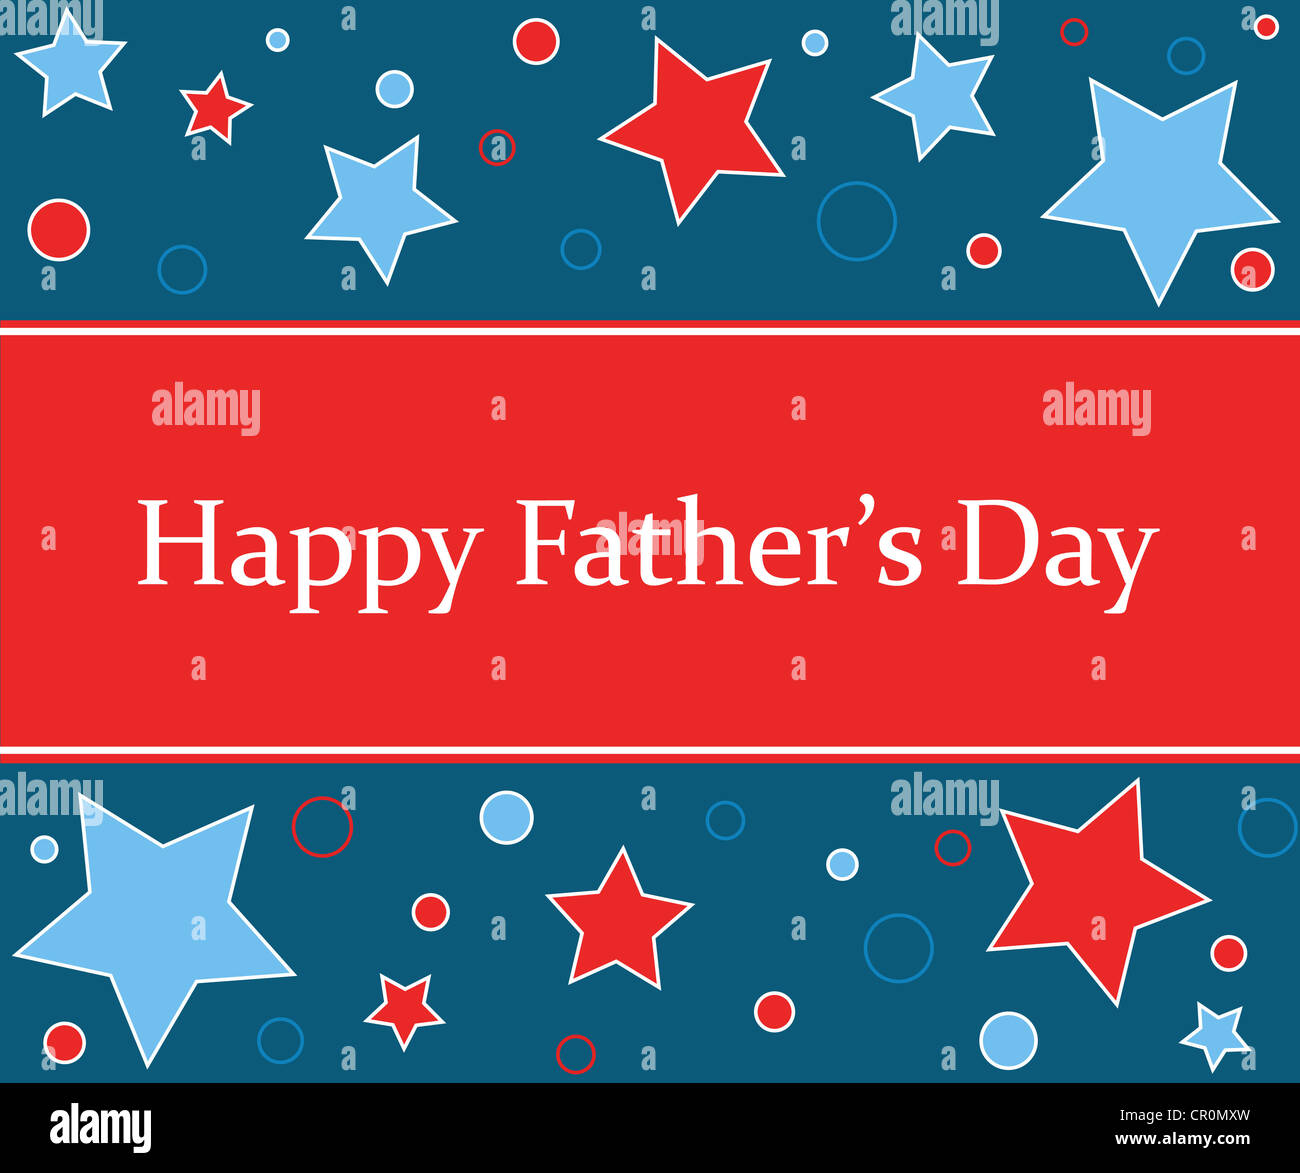 Happy Fathers Day wishes with celebration stars Stock Photo